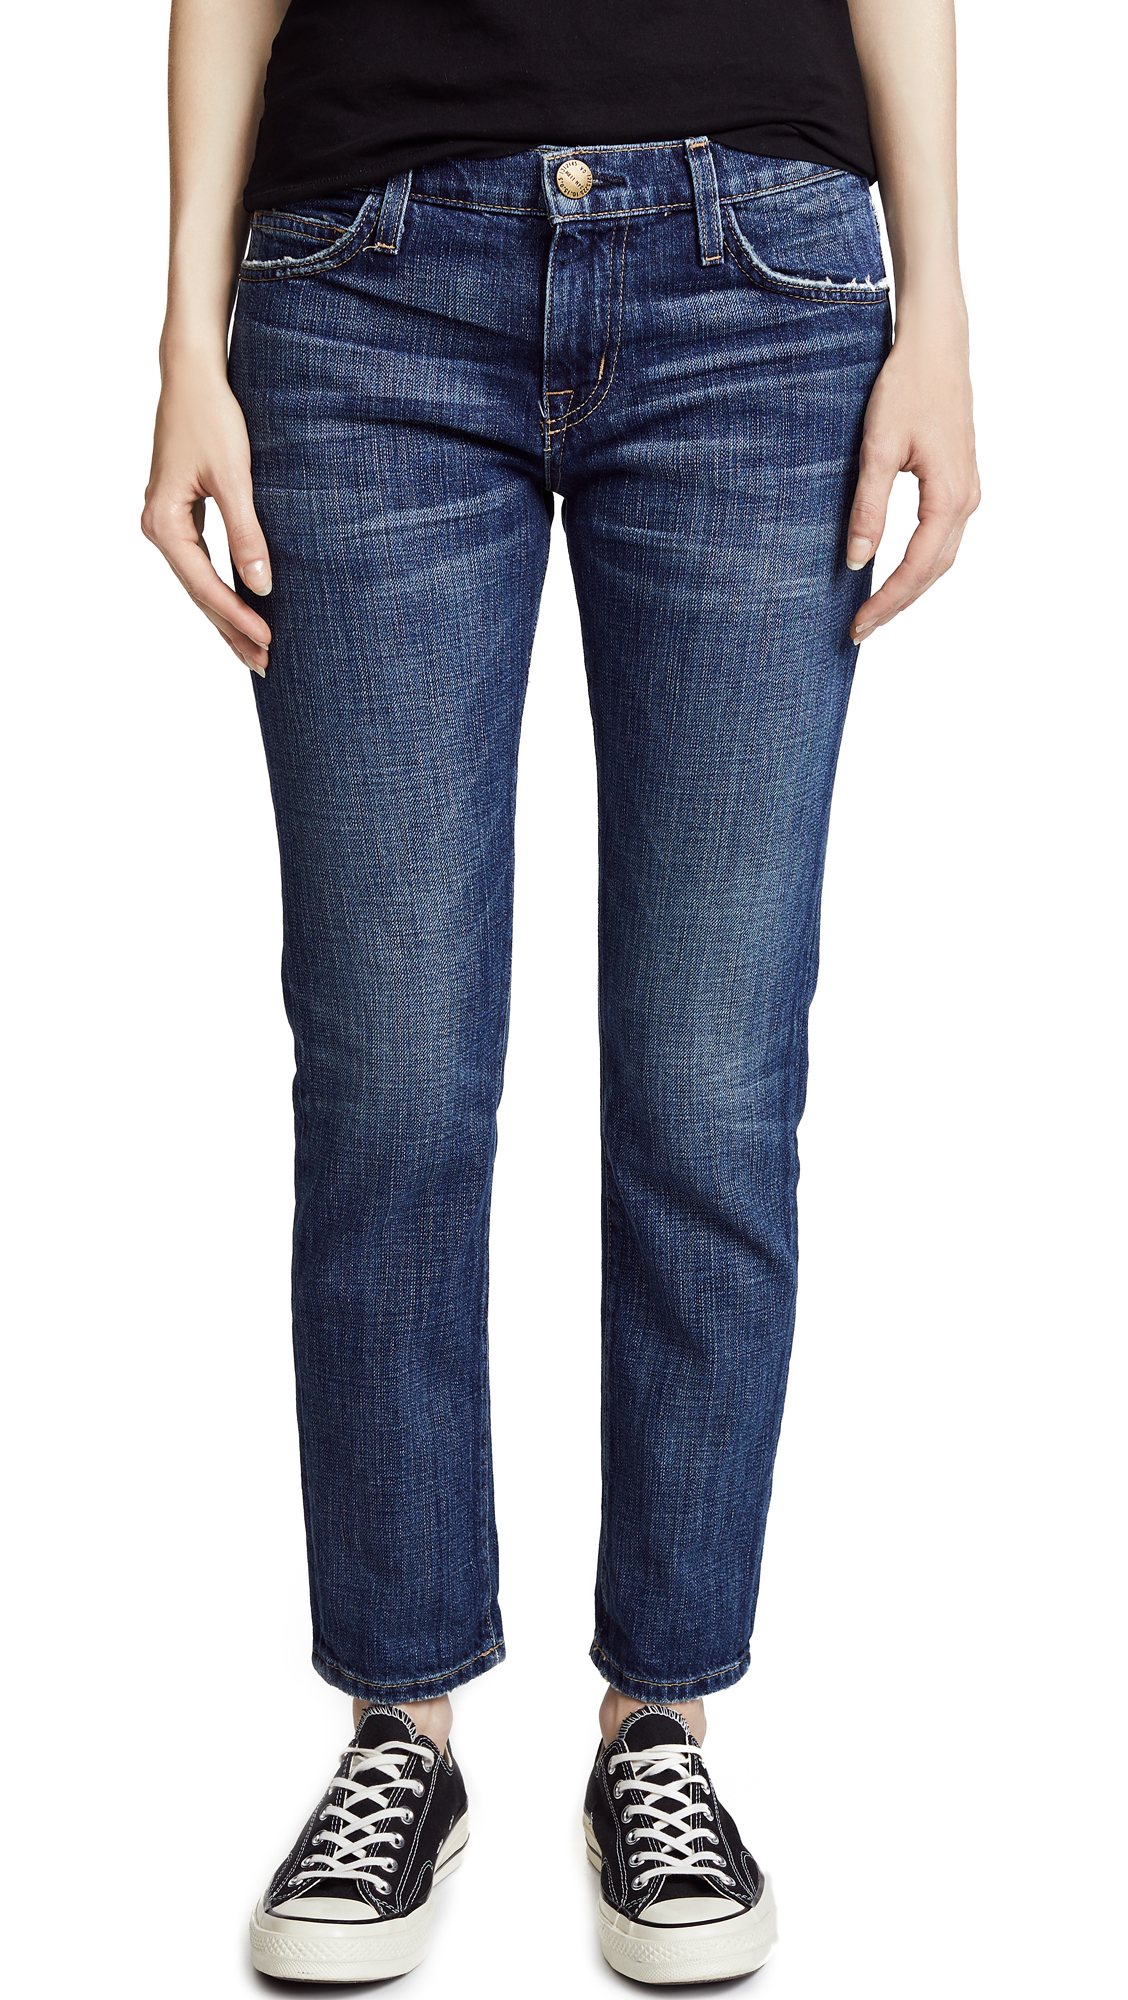 Current/Elliott The Fling Jeans - Loved